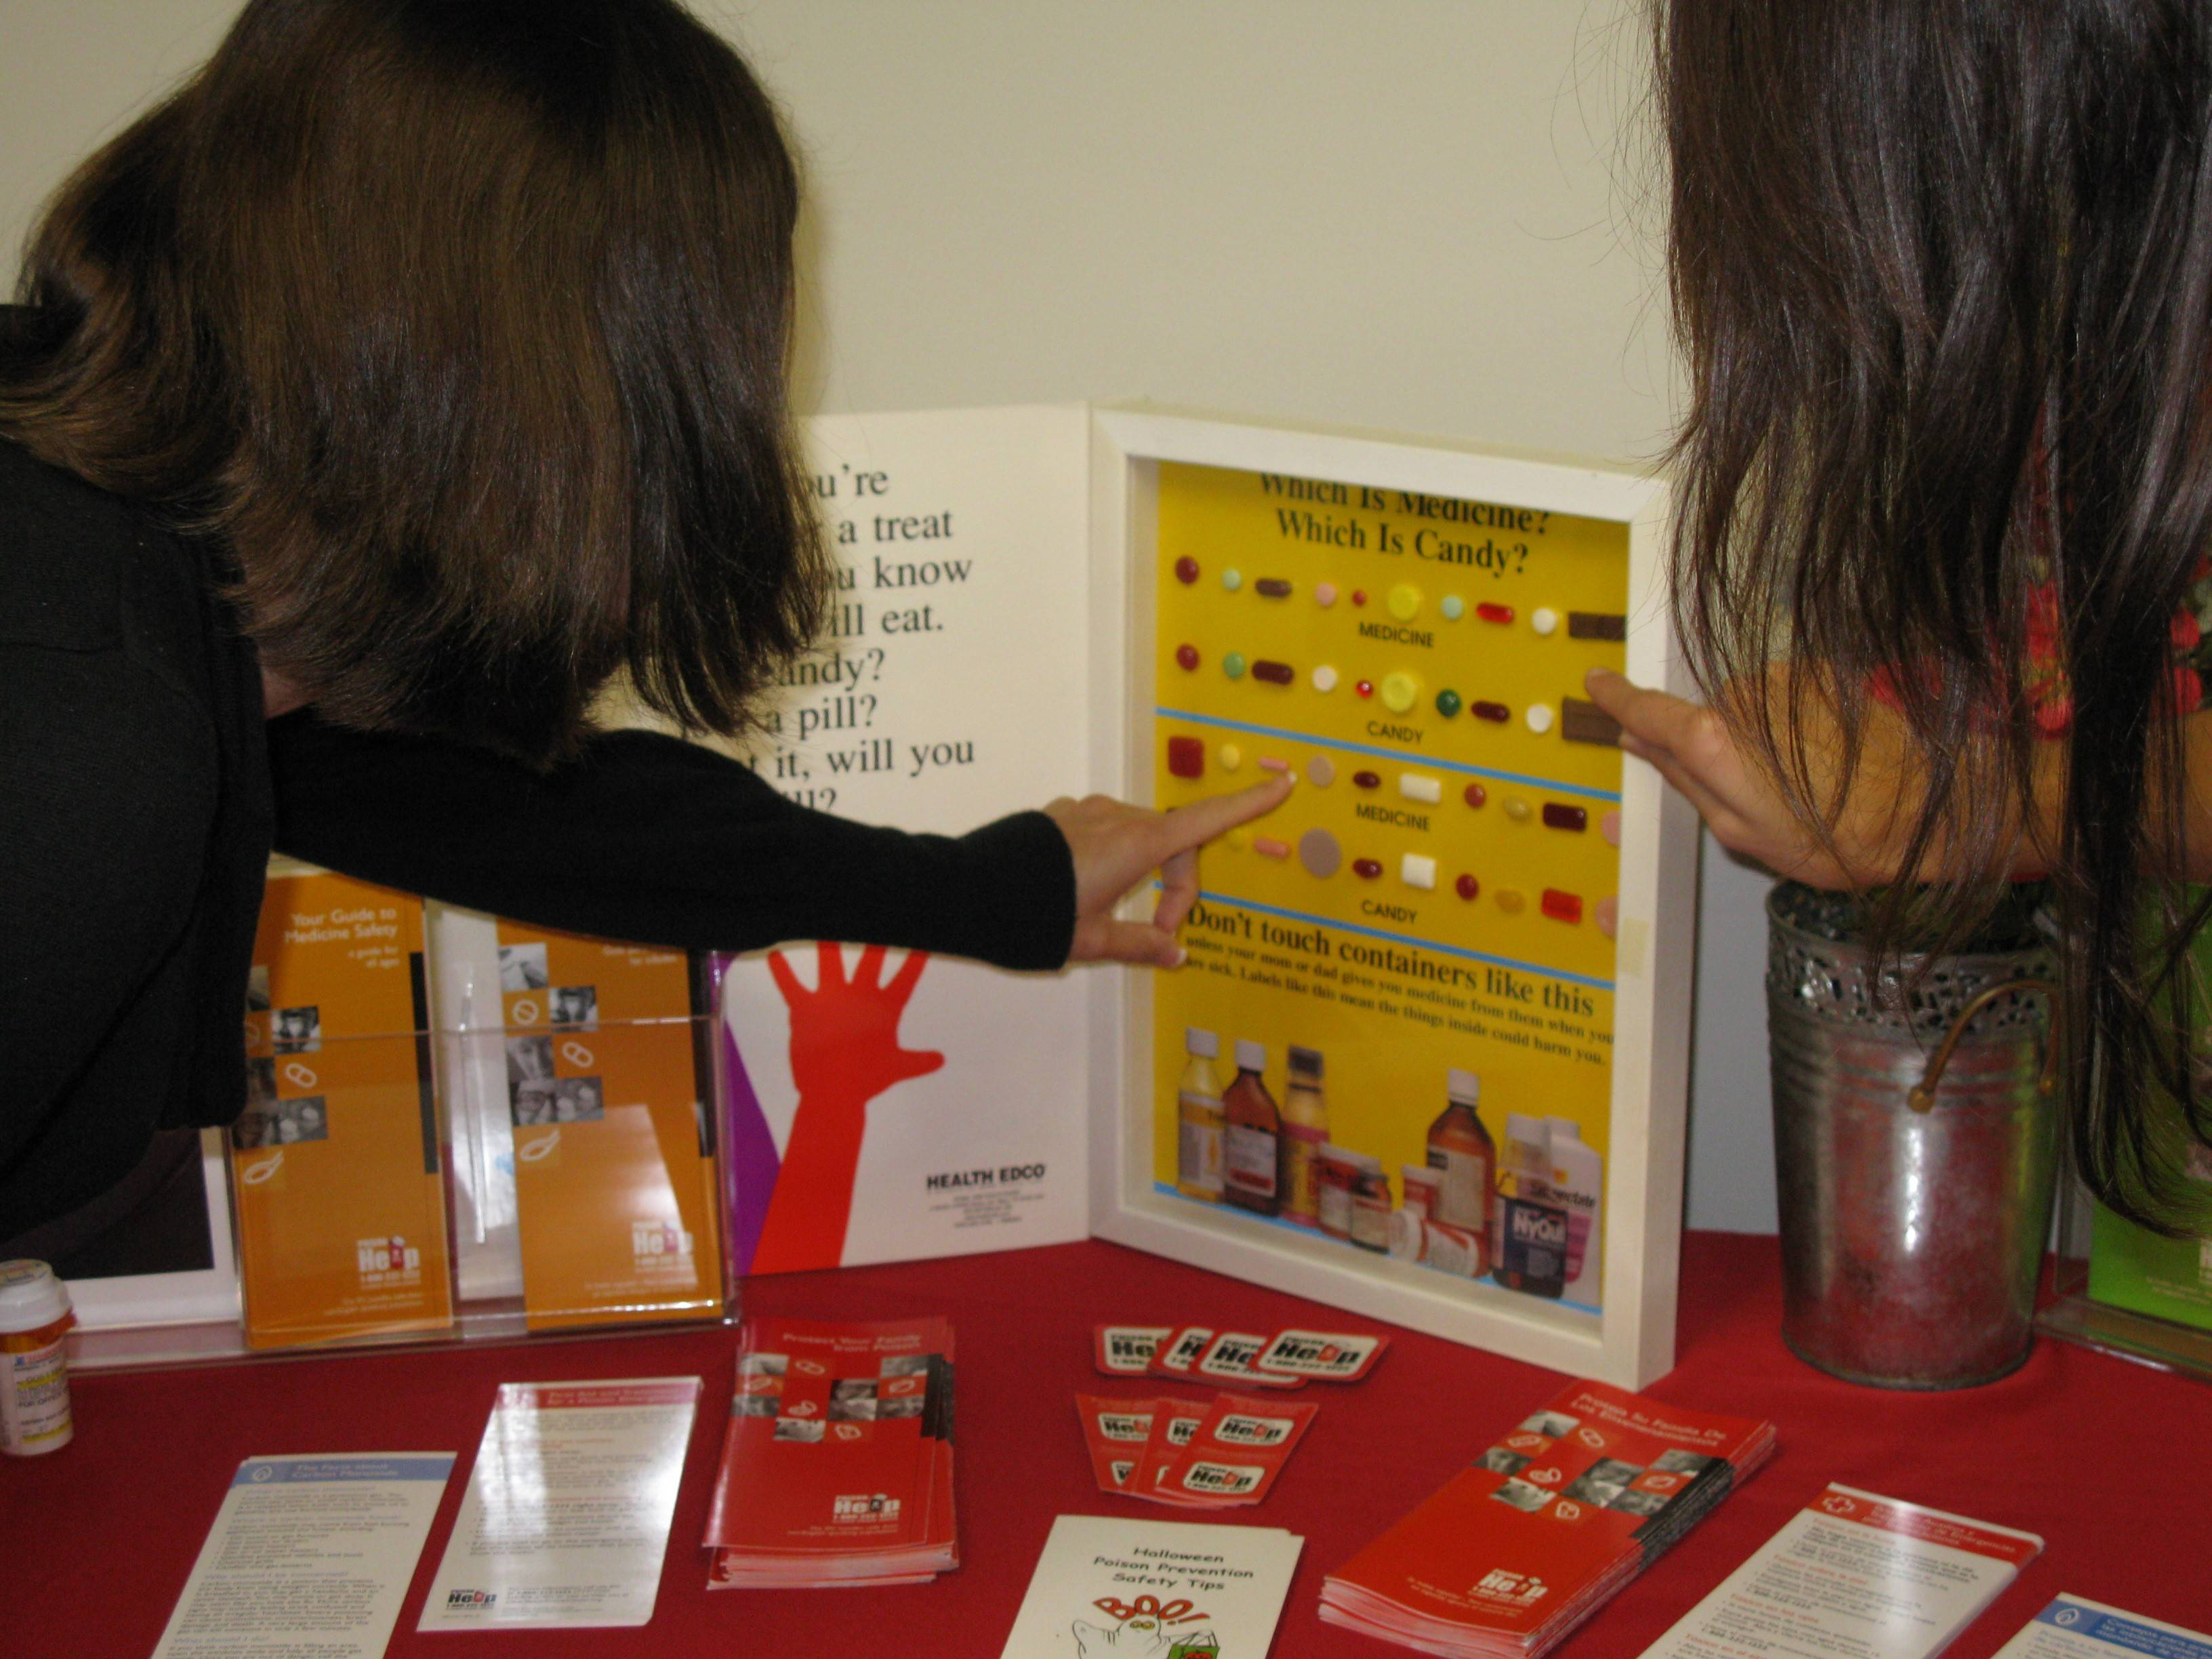 Children learn about medication safety from an Illinois Poison Center display. Call the free hotline at (800) 222-1222 if you are concerned about a possible poisoning.